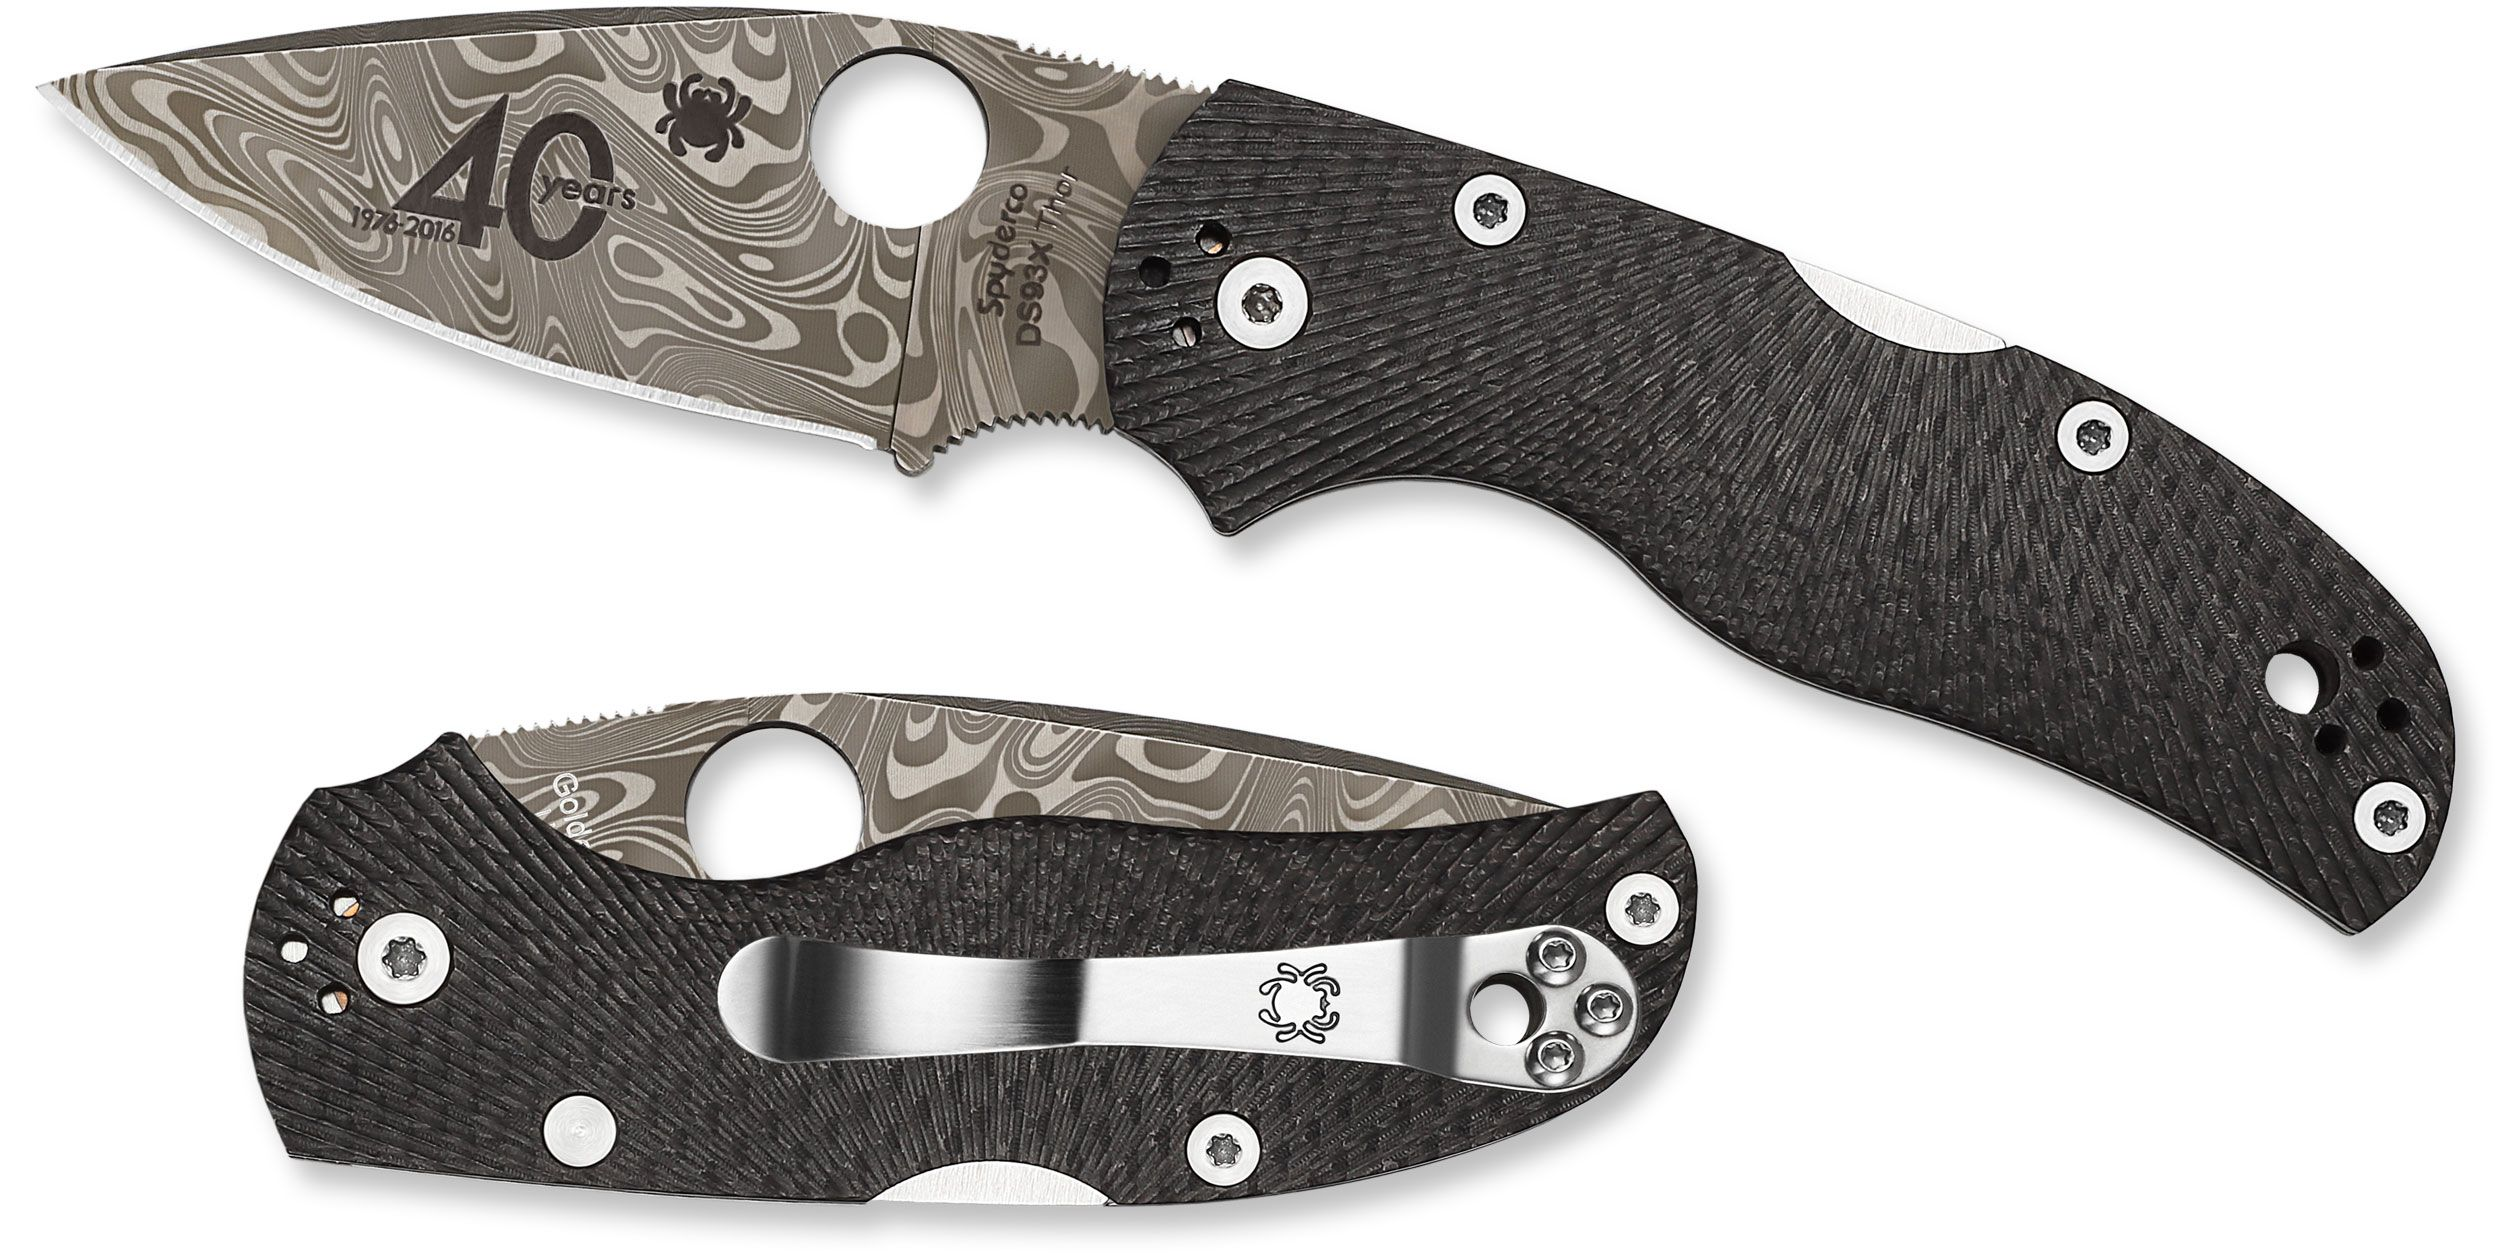 Spyderco C41CF40TH 40th Anniversary Native 5 Folding Knife 2.98 inch Damasteel Blade, Fluted Carbon Fiber Handles, Sprint Run